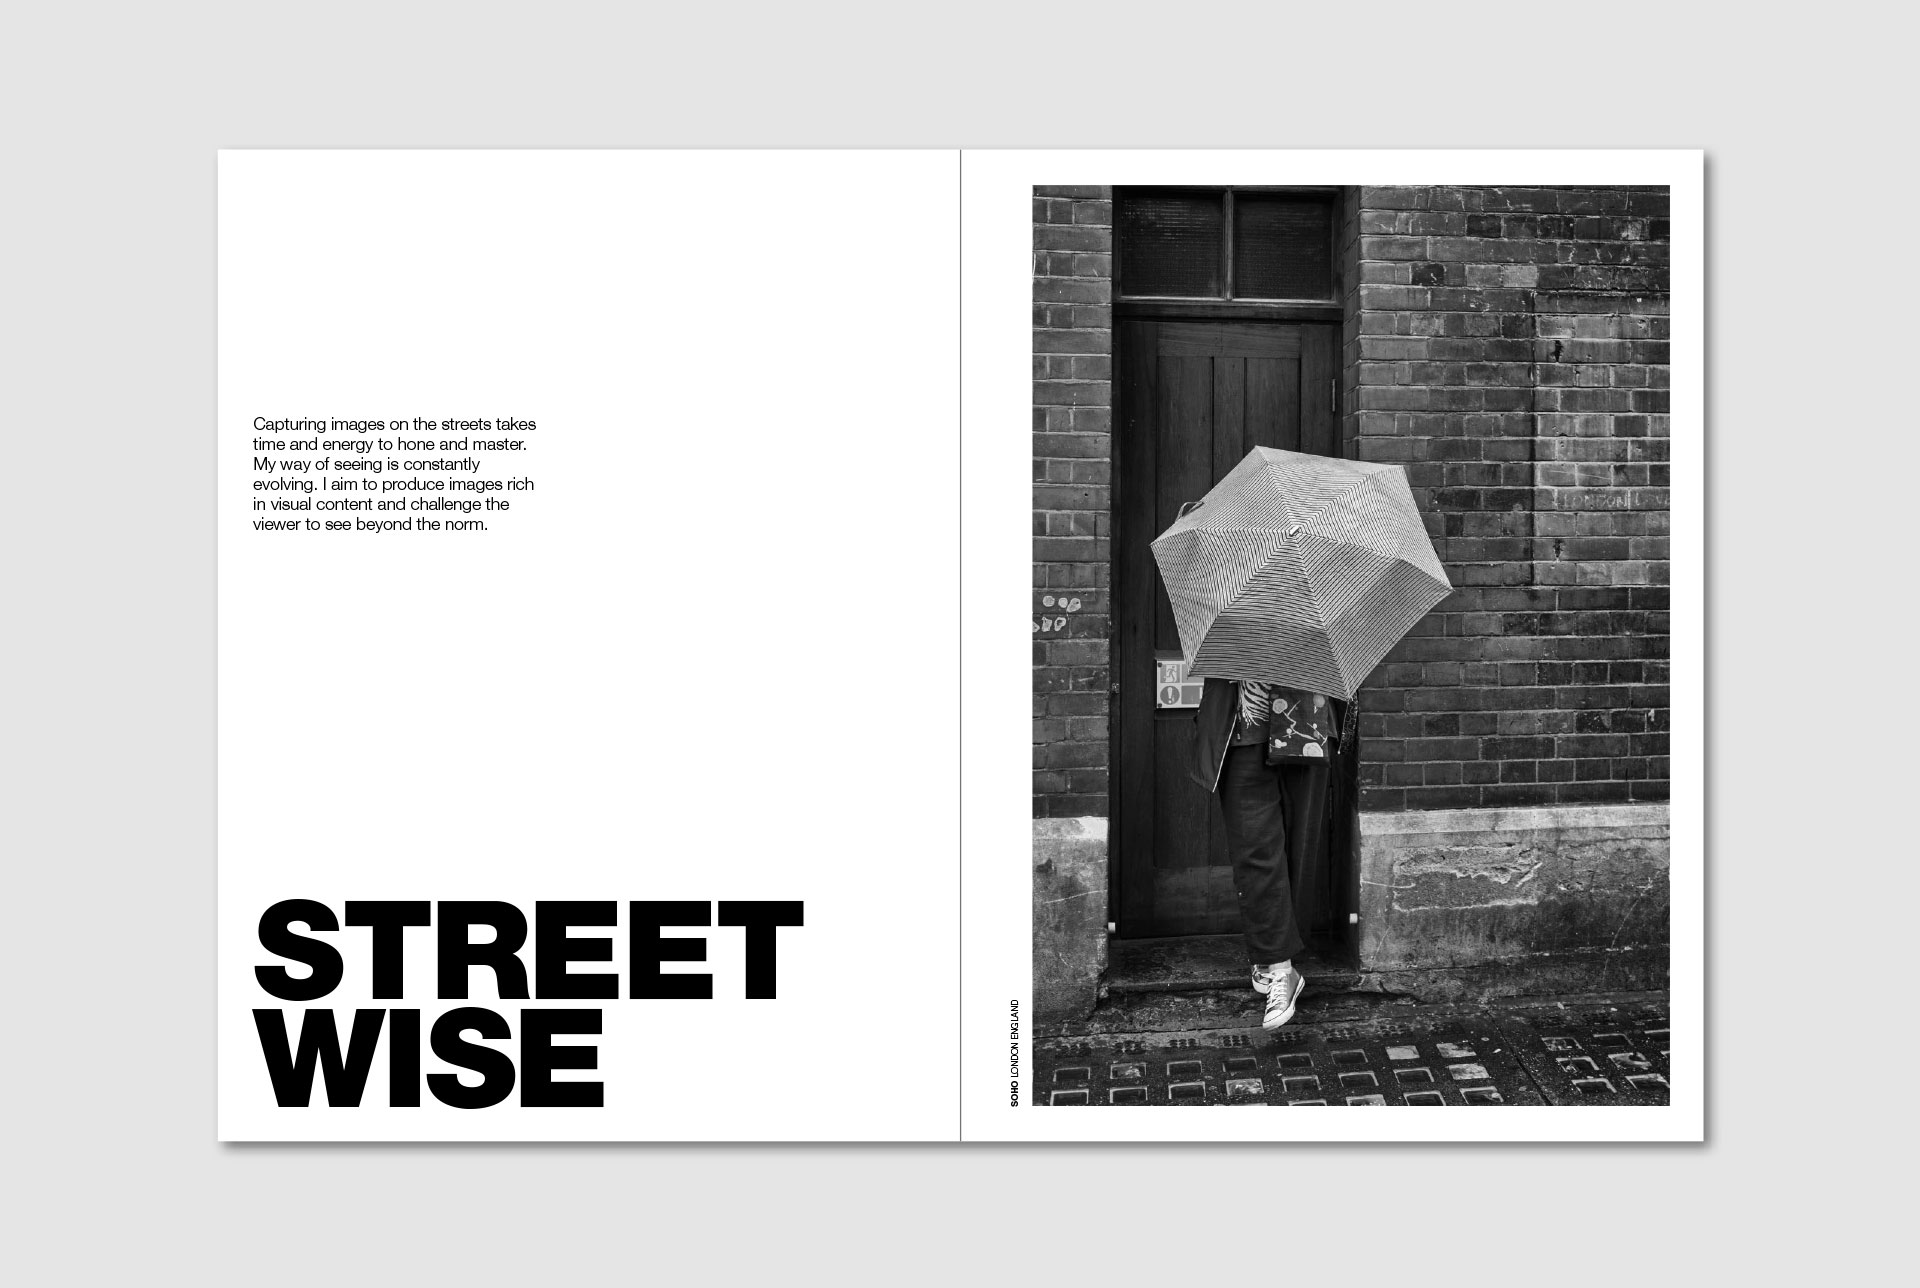 its-not-what-you-see-photography-magazine-street-wise-pages.jpg